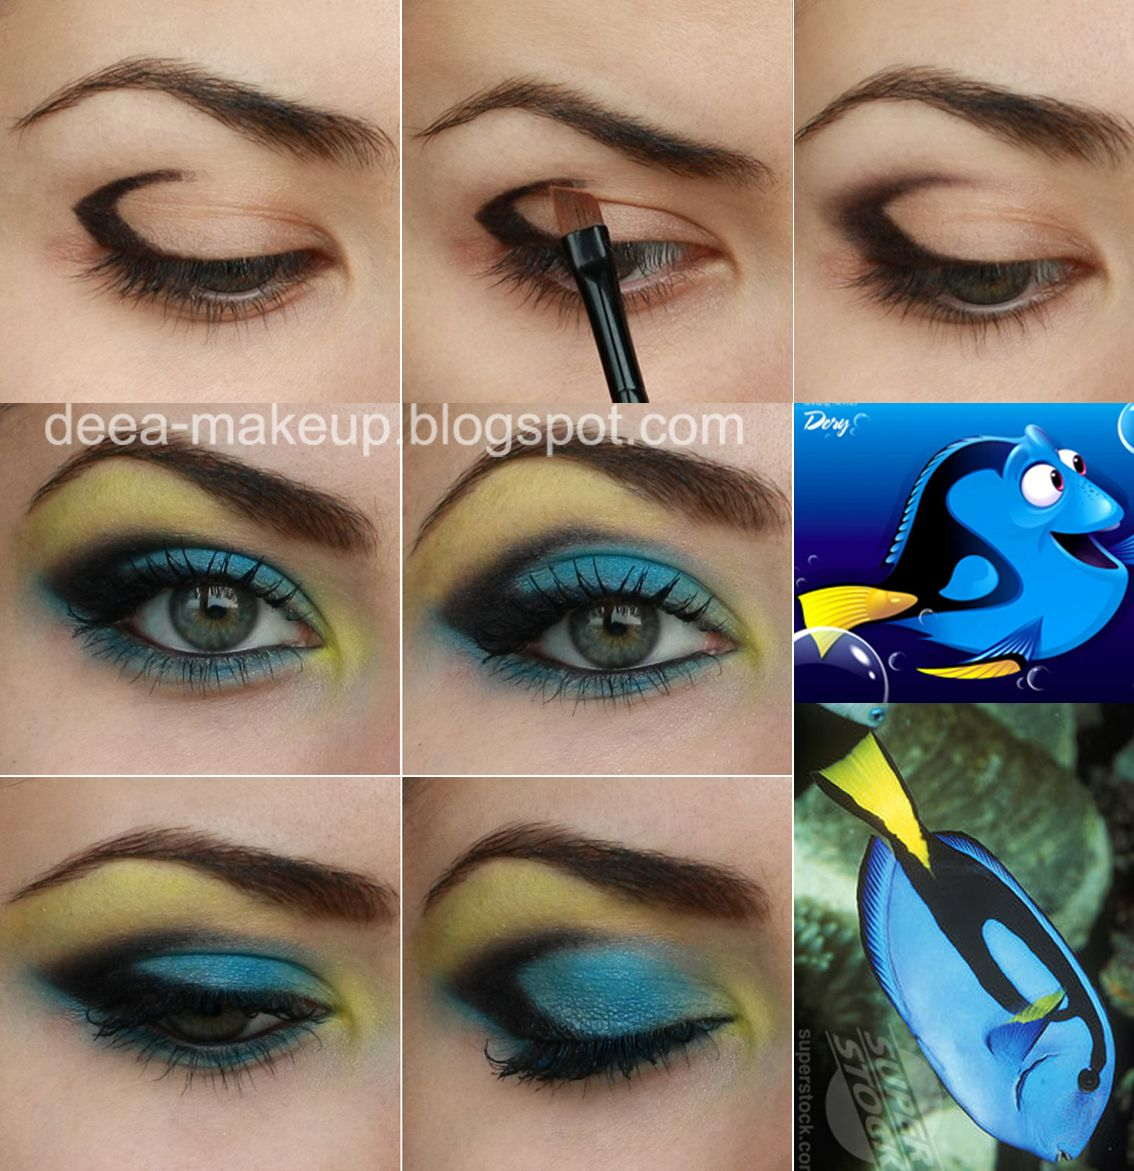 Dory Finding Nemo Inspired Make-up  http://deea-makeup.blogspot.ro/2011/10/dory-finding-nemo-pencil-technique.html